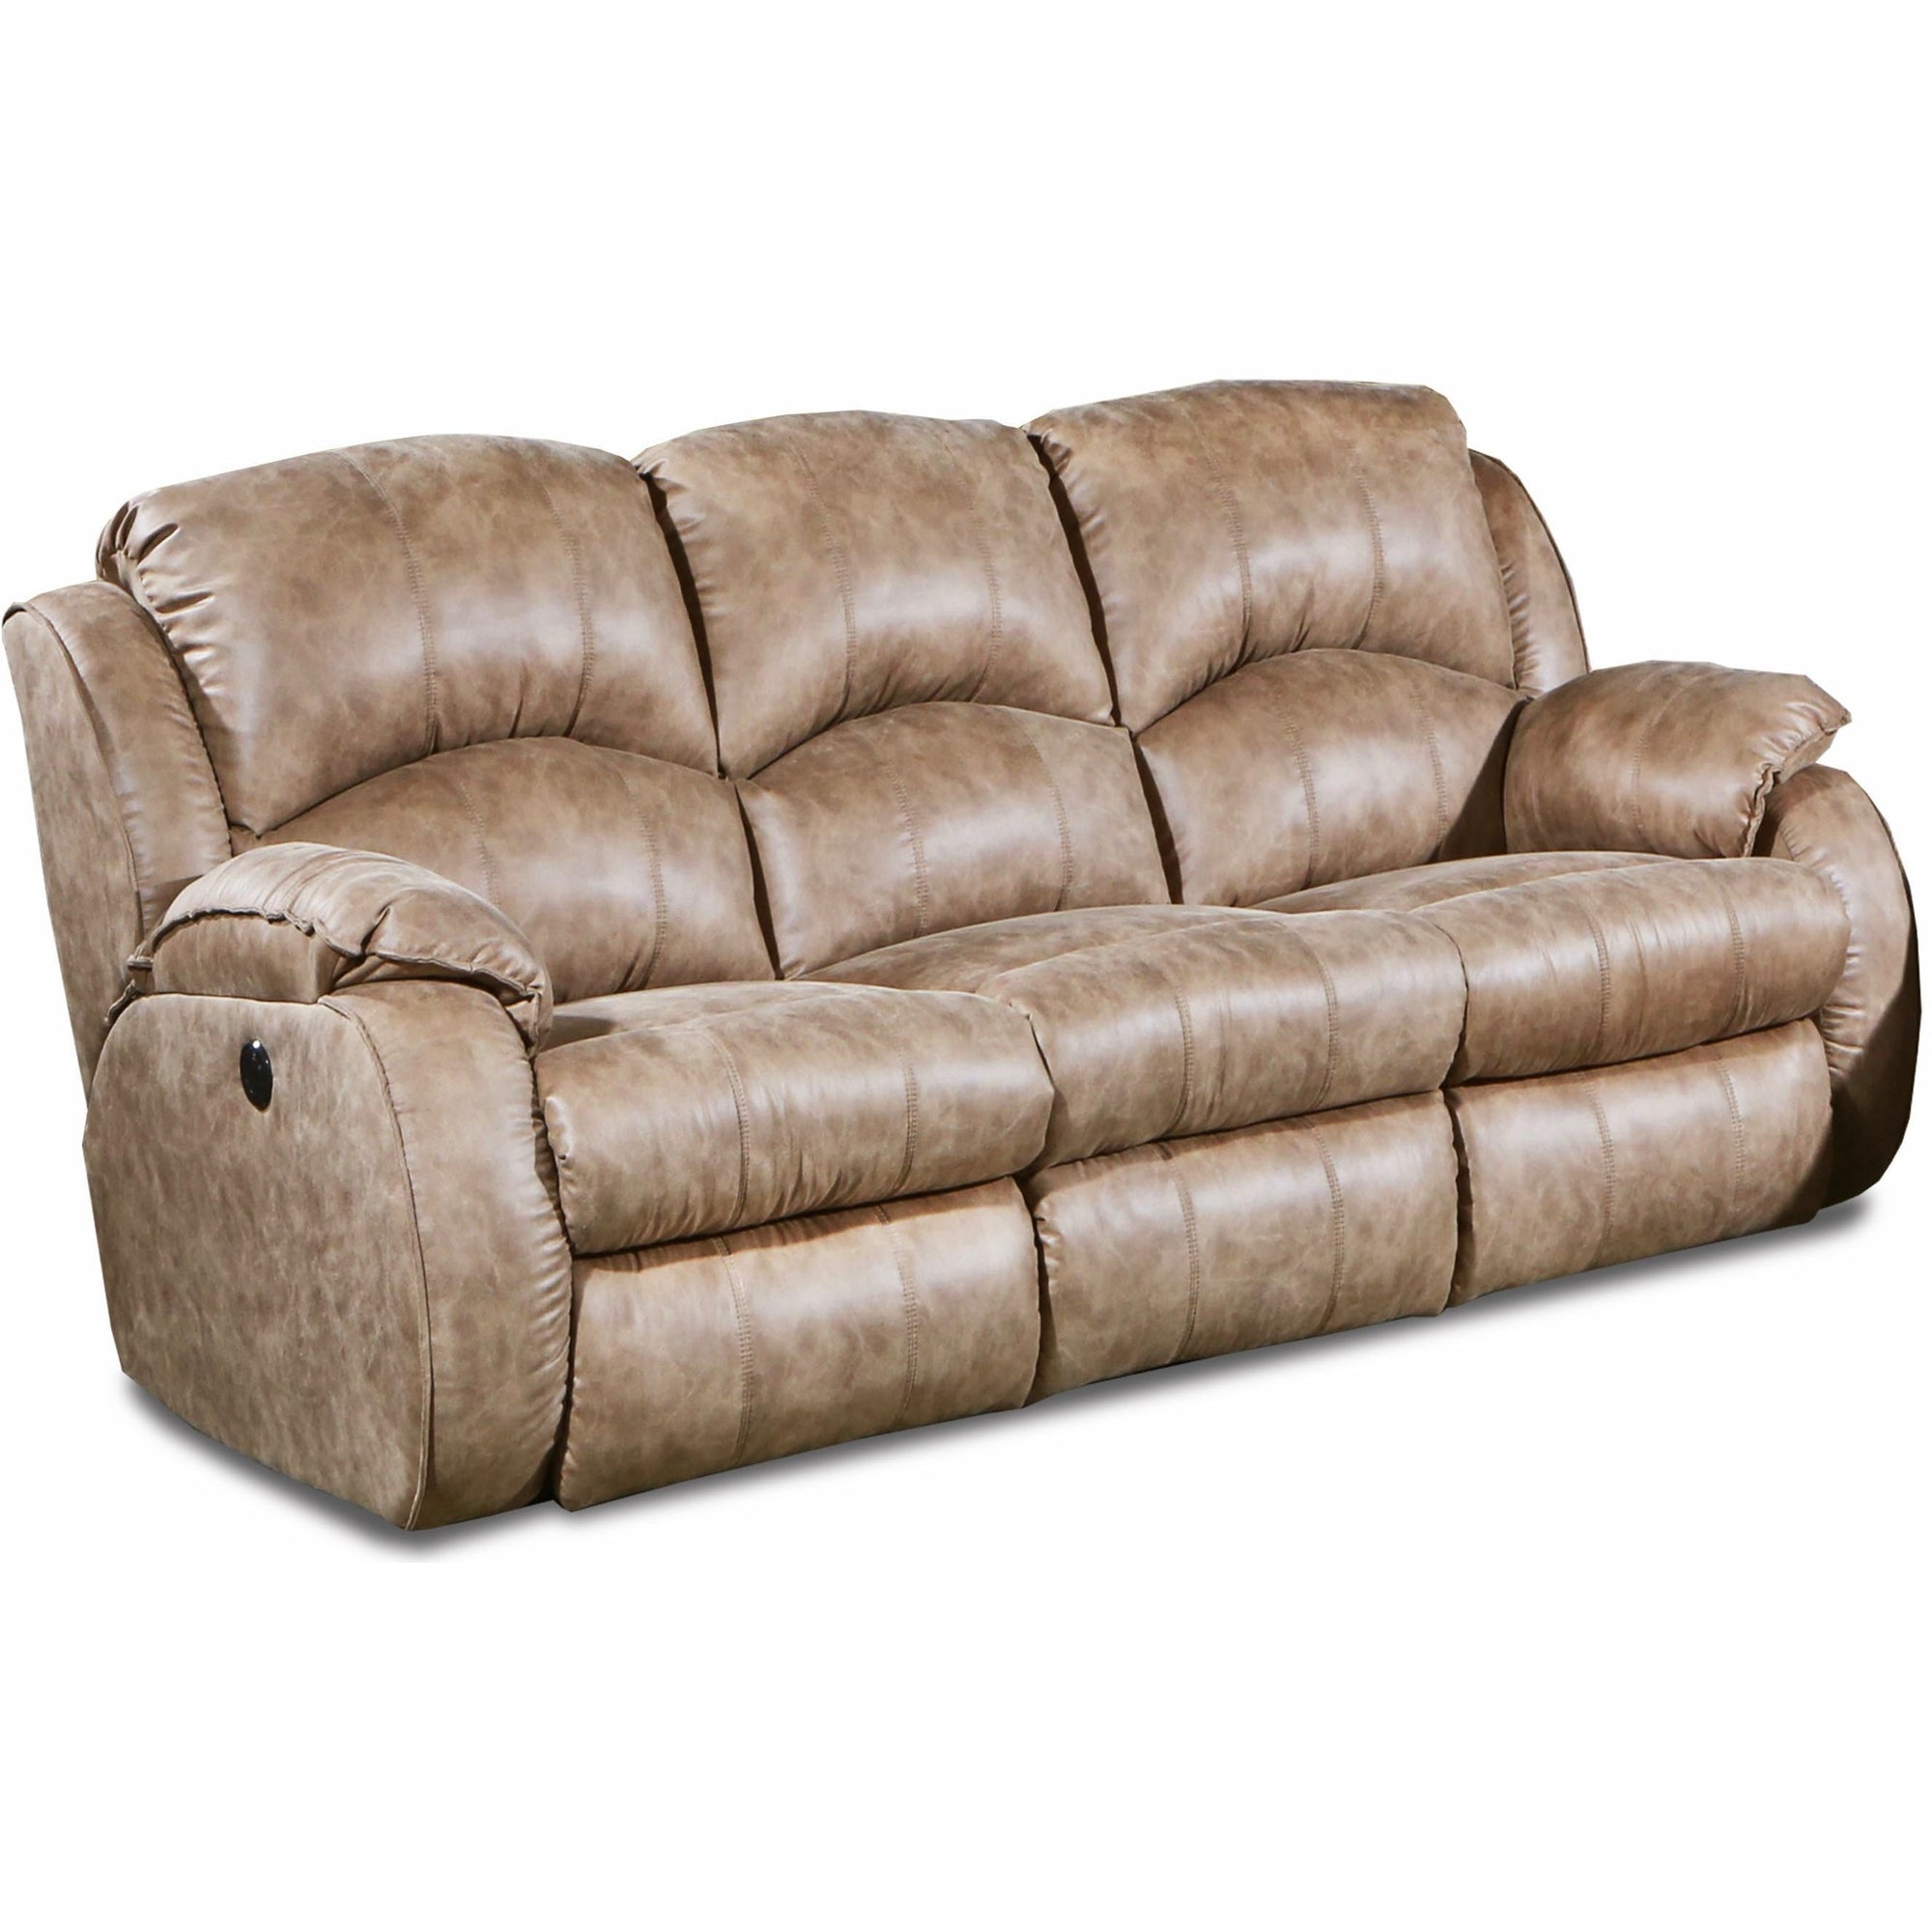 Cagney Power Sofa